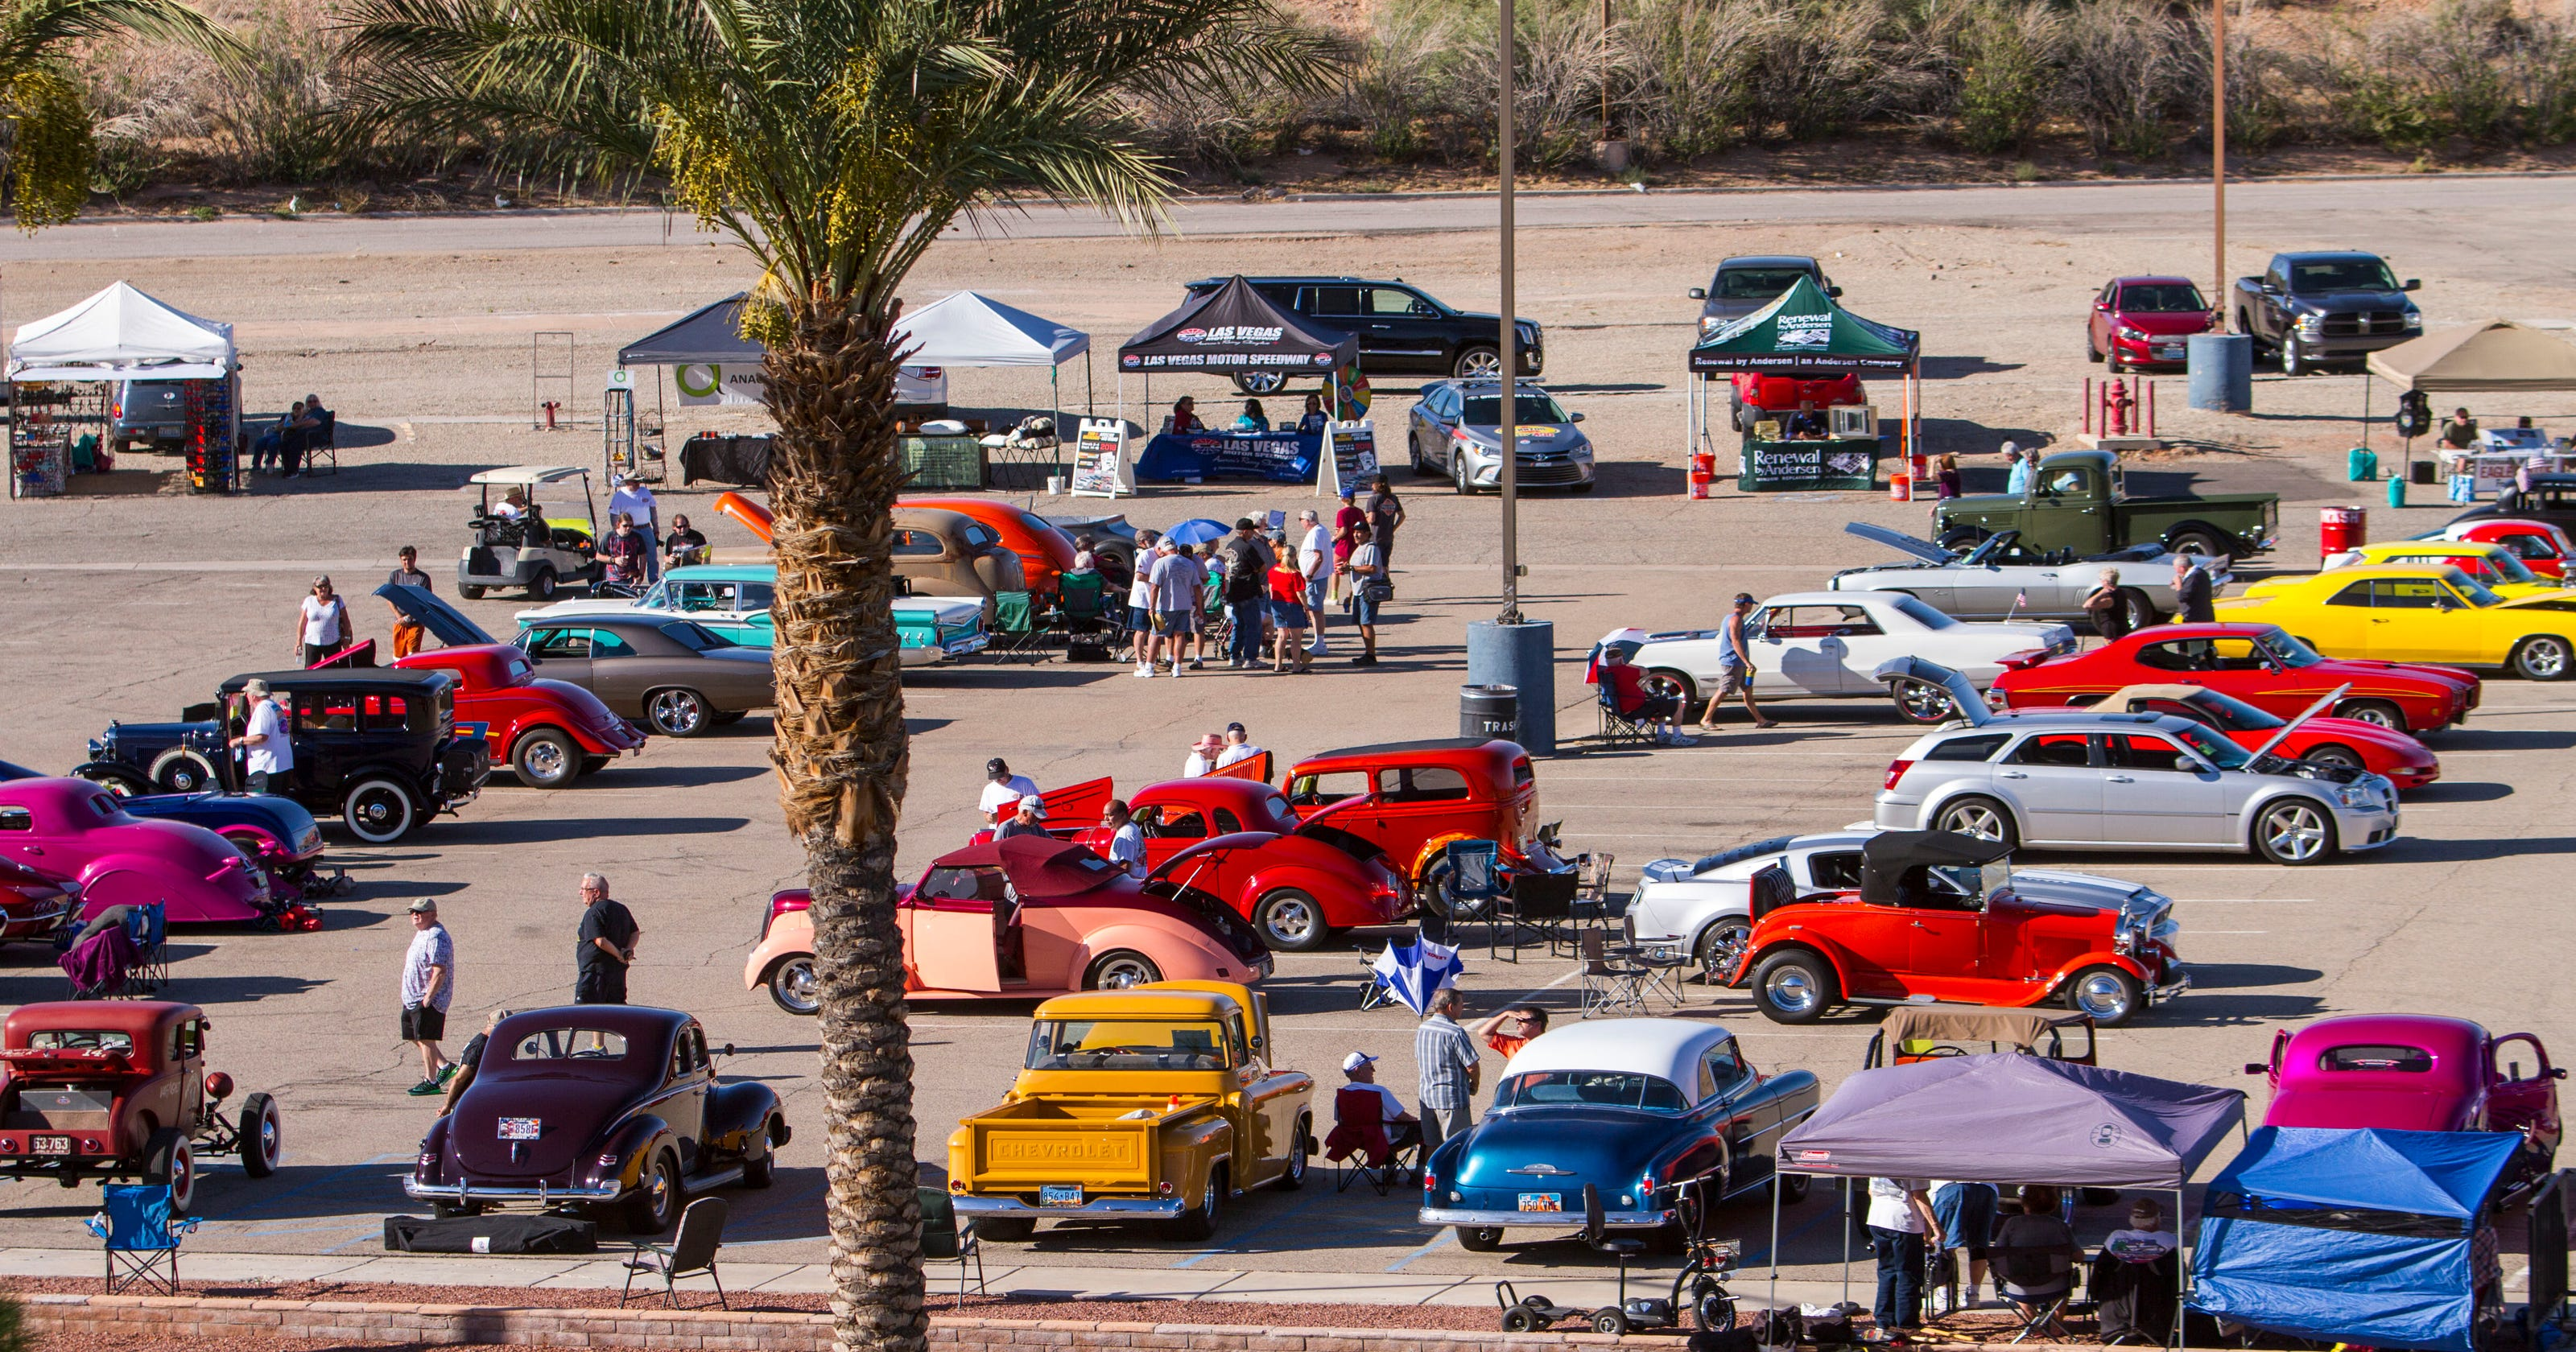 Super Run Car Show In Mesquite - Mesquite car show 2018